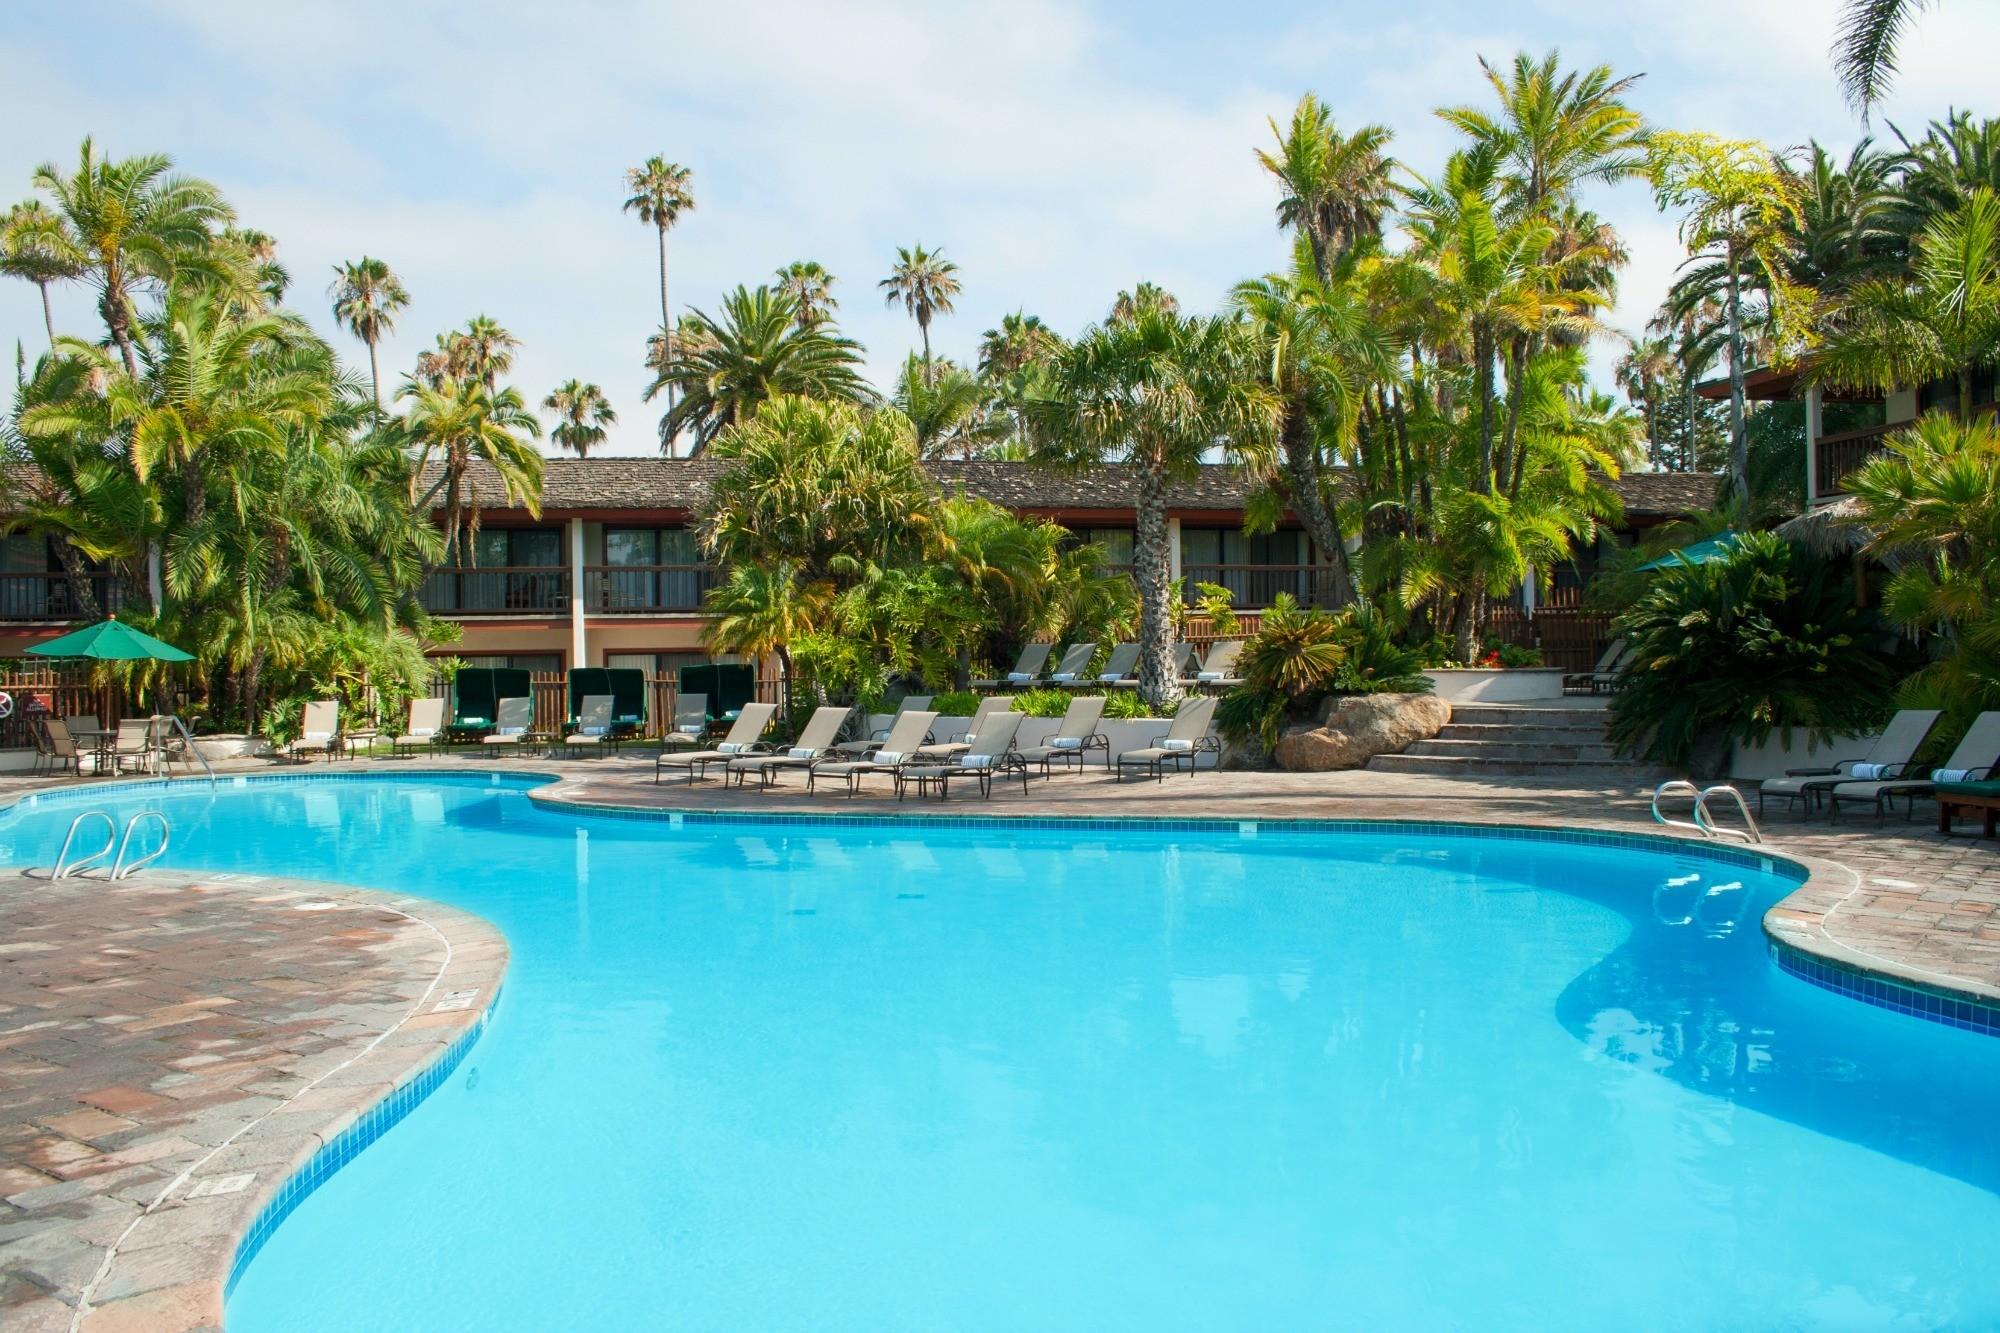 Best pools in san diego